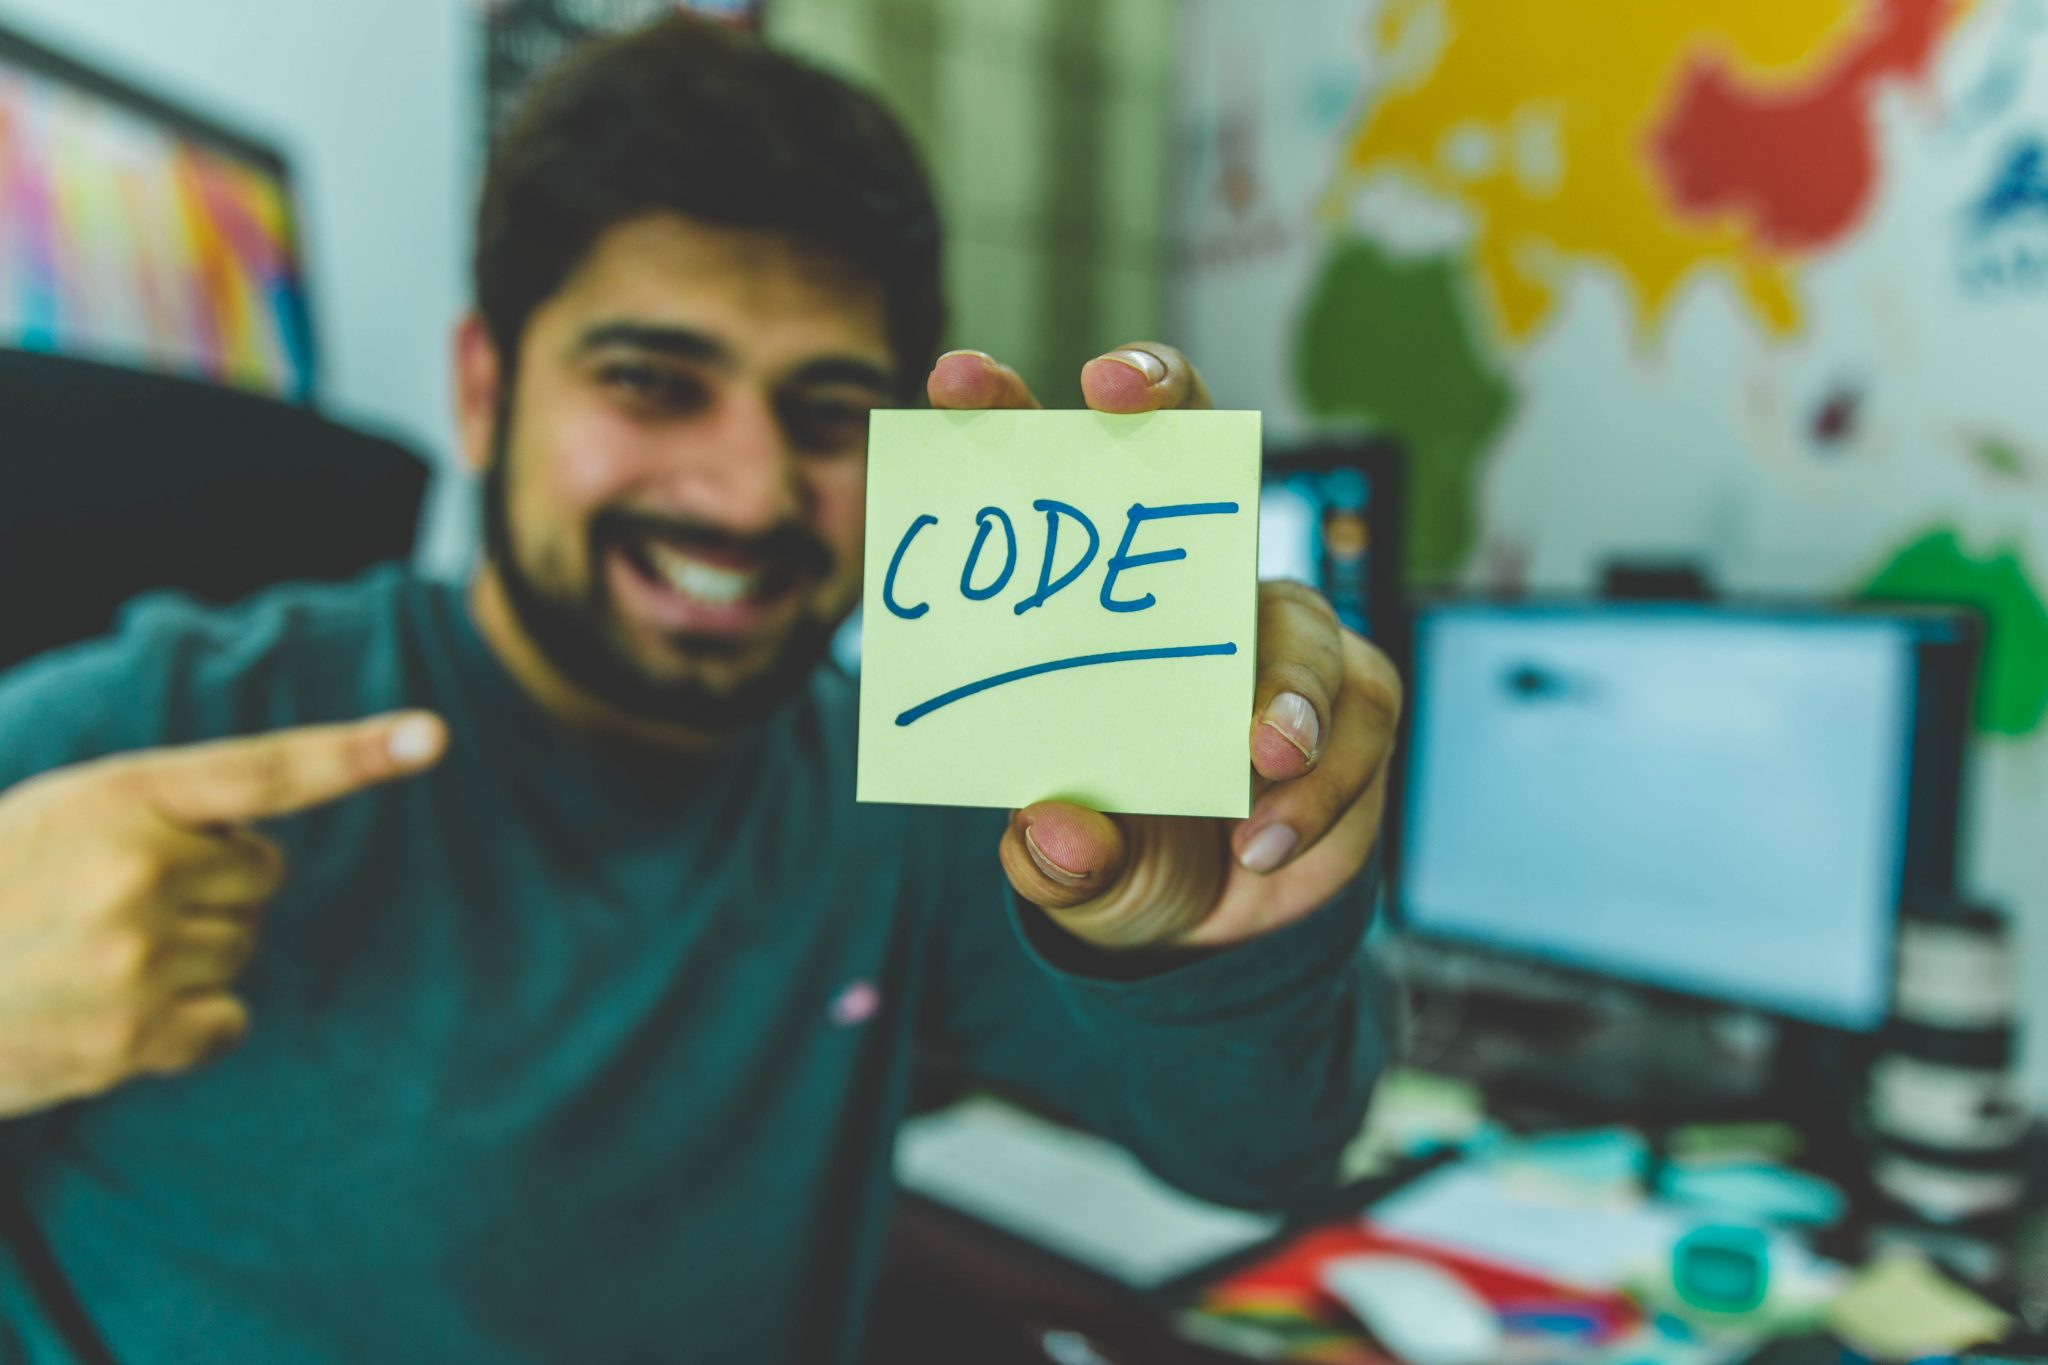 learn-python-for-commodity-trading-code-coding